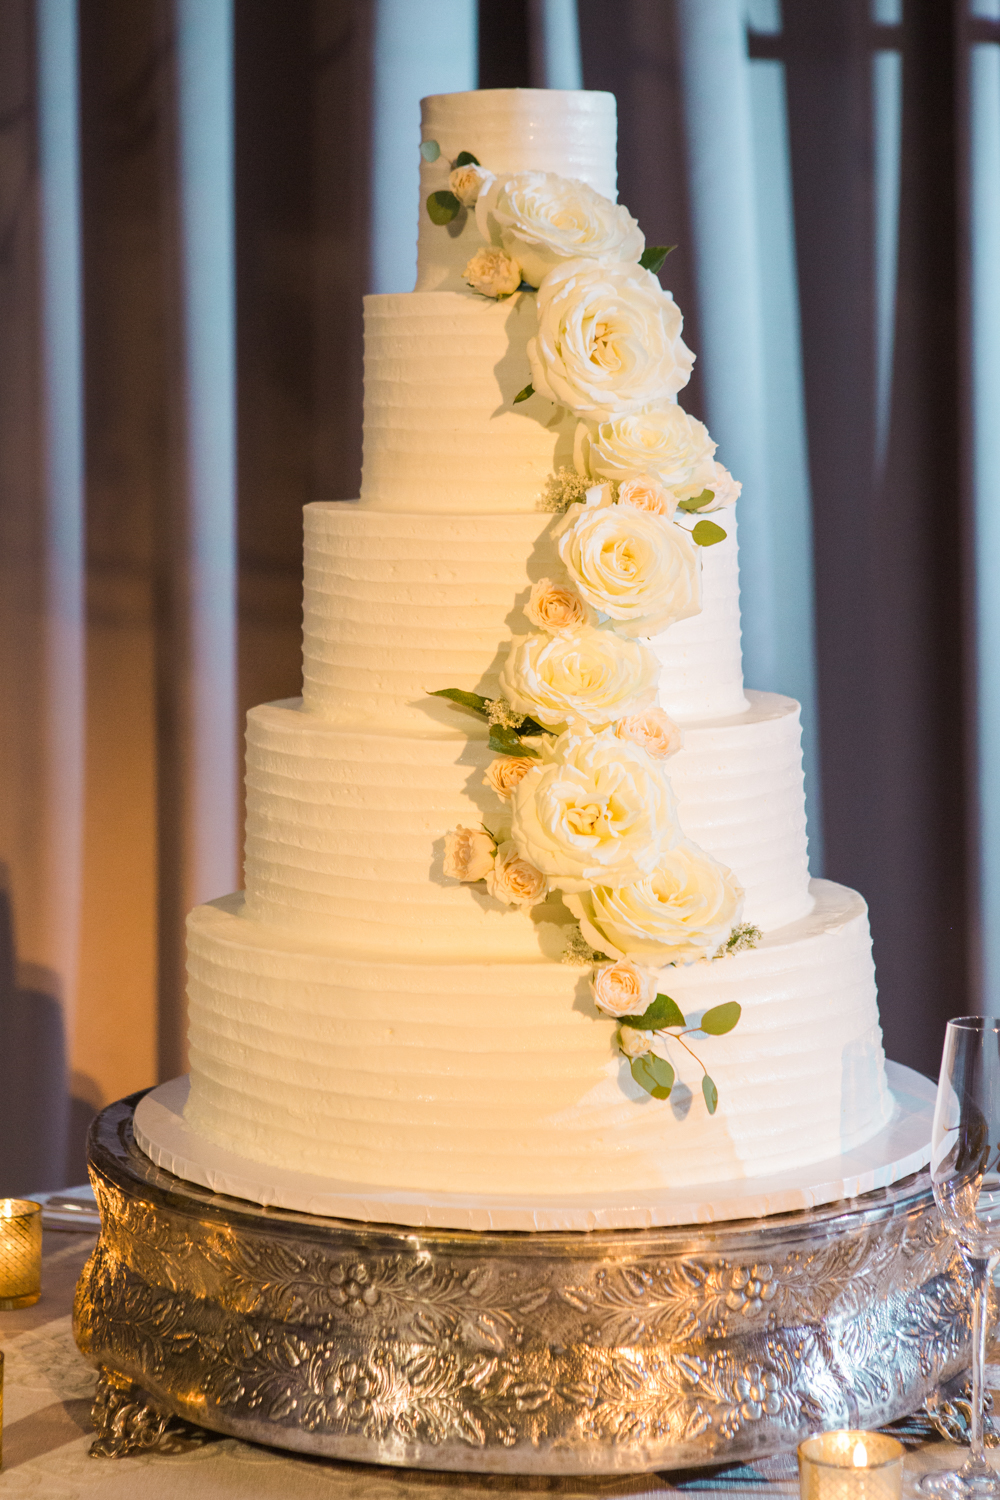 10 Wedding Cakes with Fresh Flowers - Inside Weddings